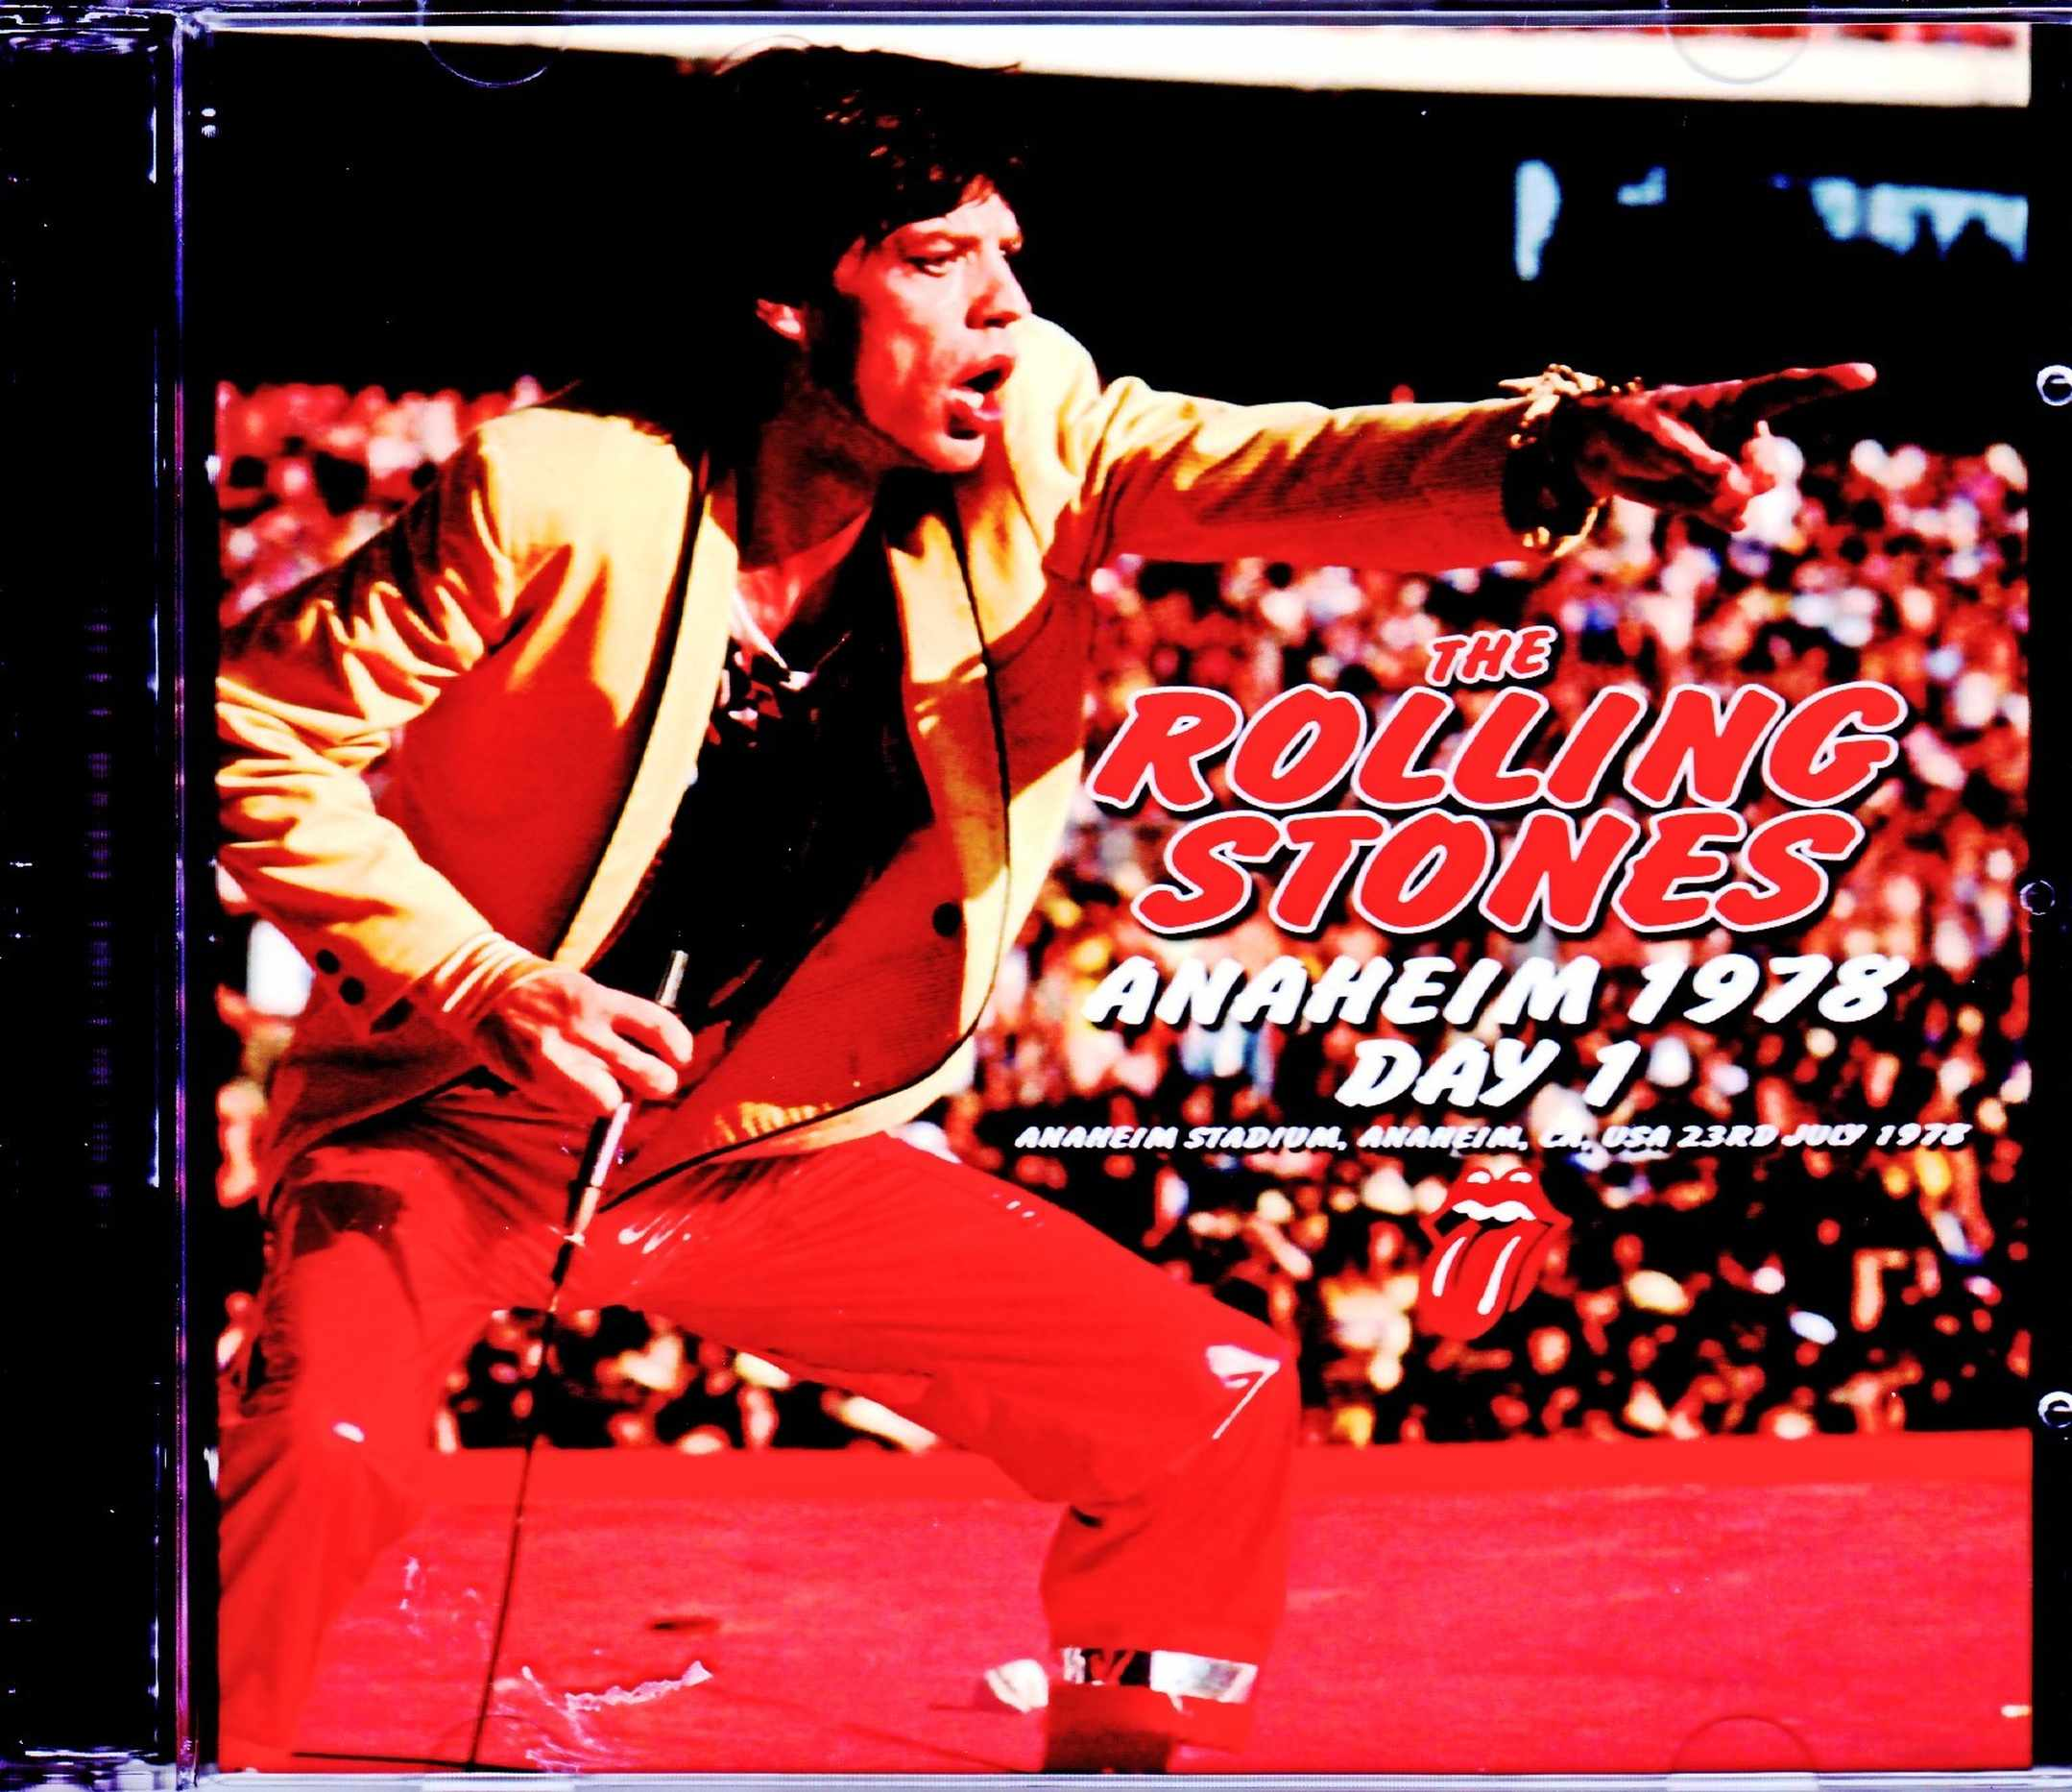 Rolling Stones ローリング・ストーンズ/NY,USA 7.23.1978 Upgrade